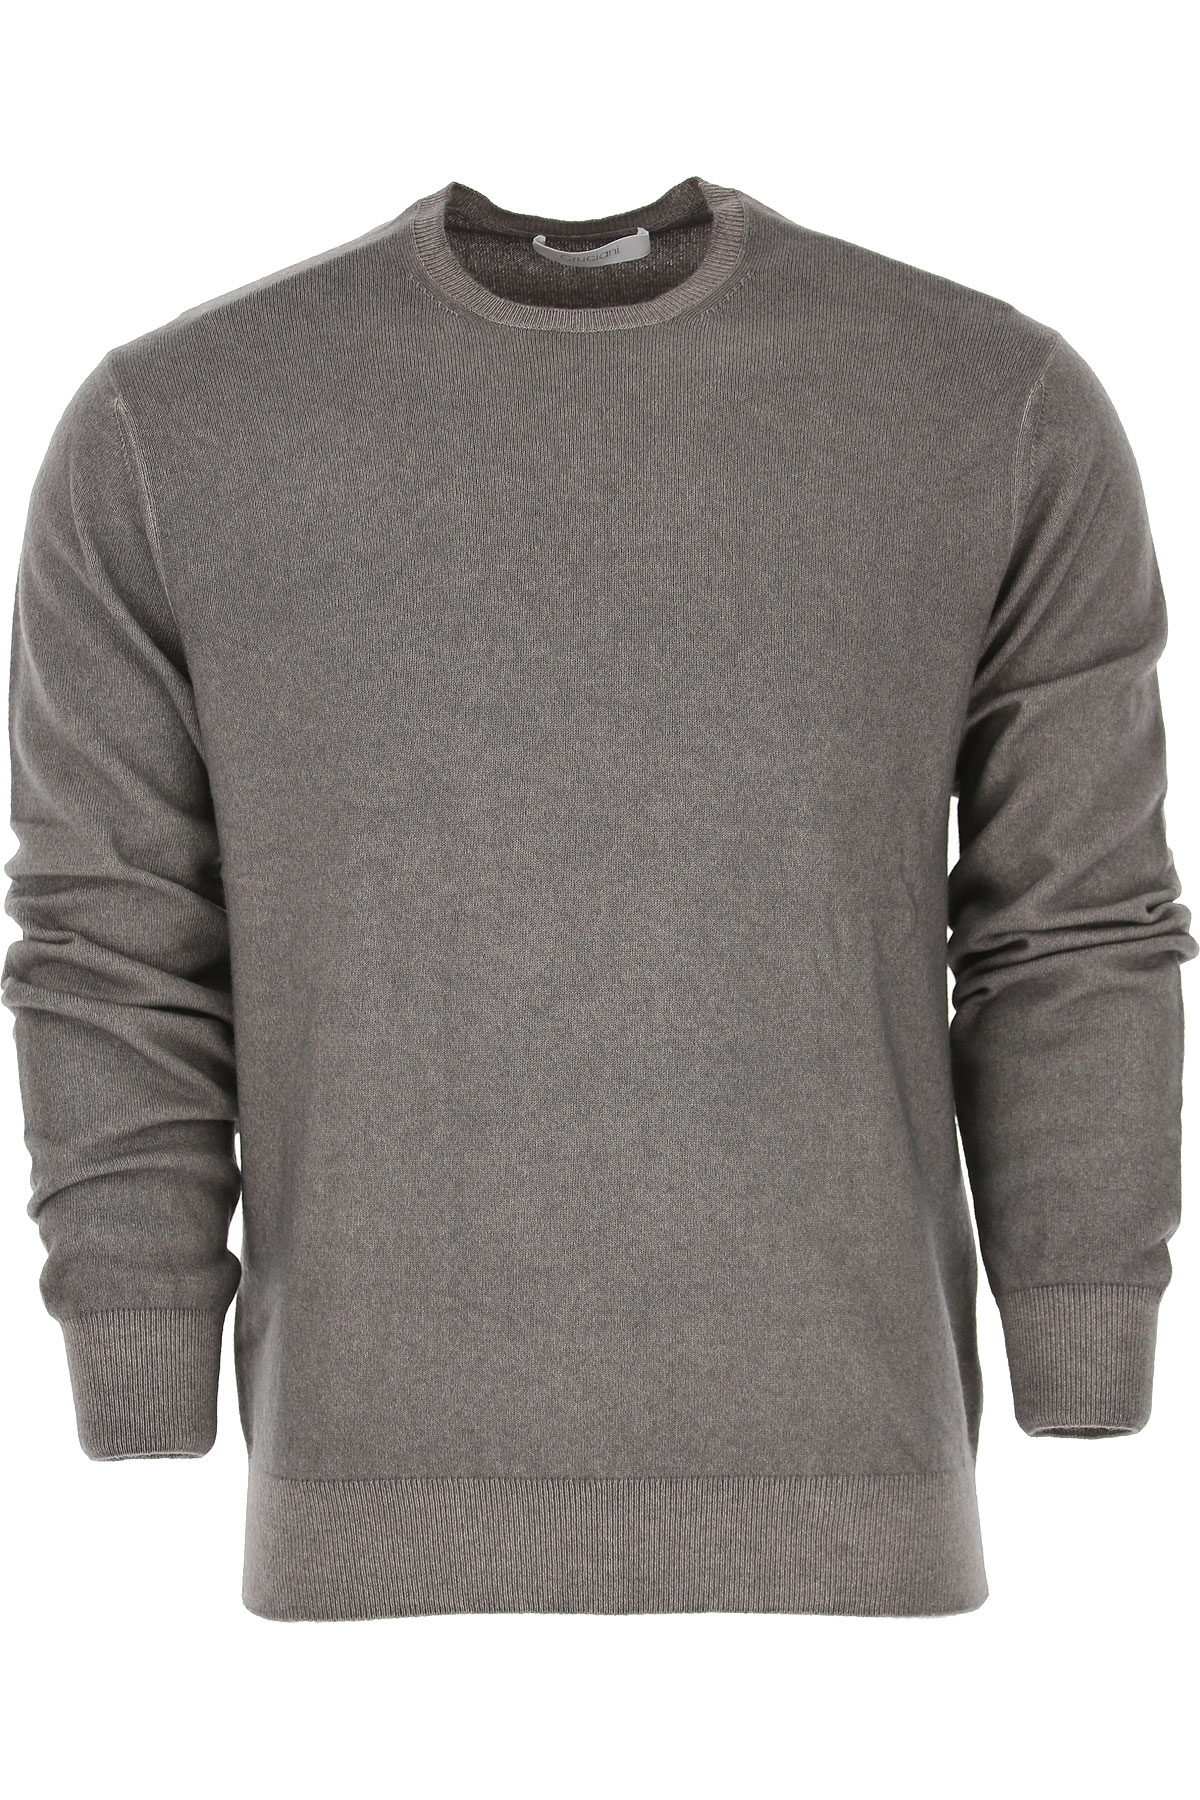 Image of Cruciani Sweater for Men Jumper, Anthracite Grey, Cashemere, 2017, L M XL